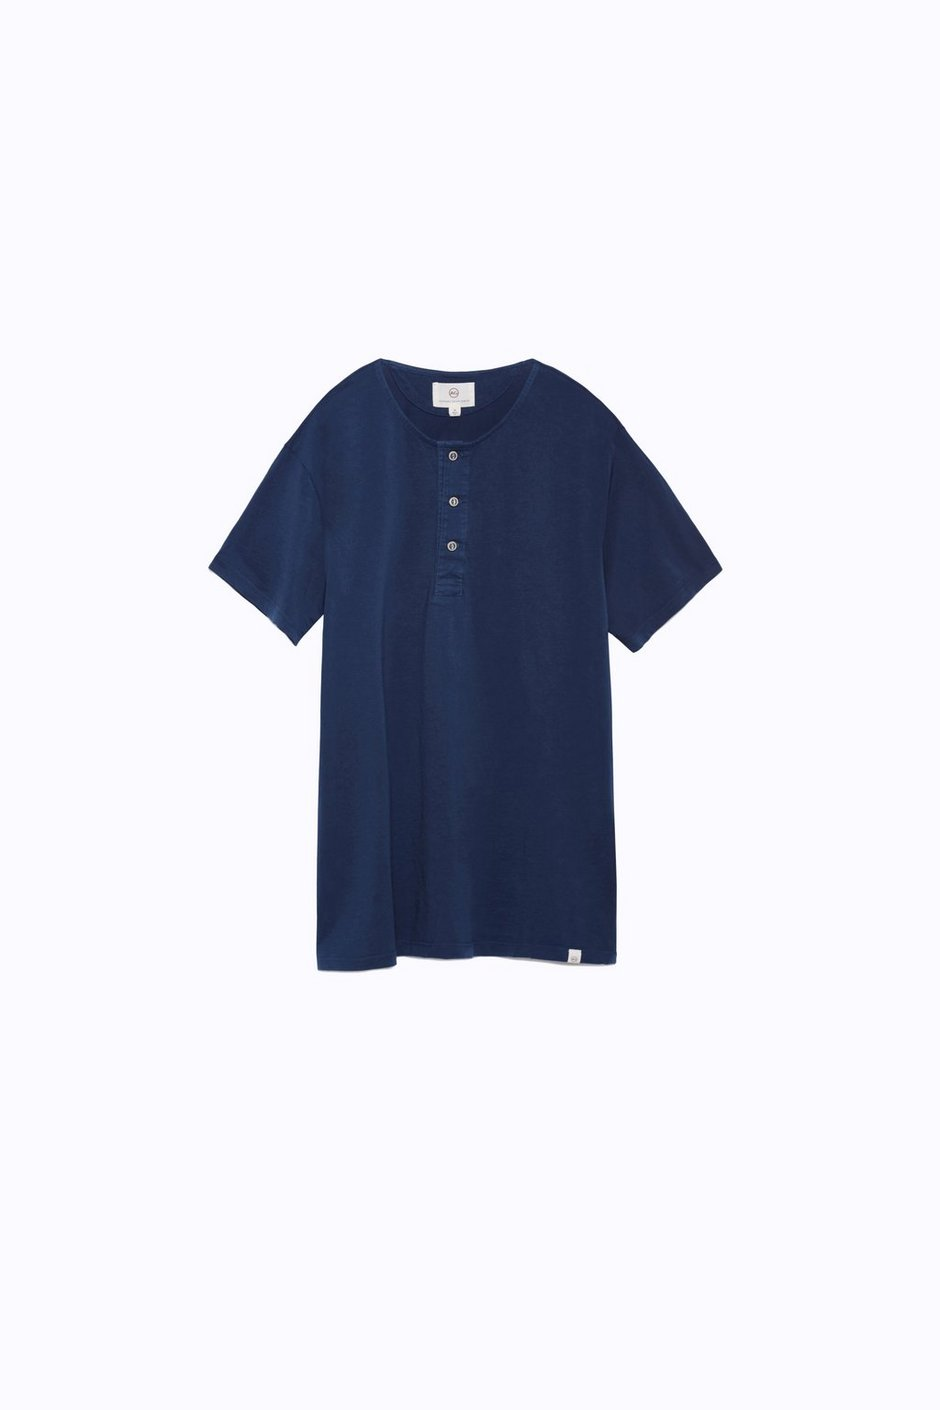 The Commute S/S Henley